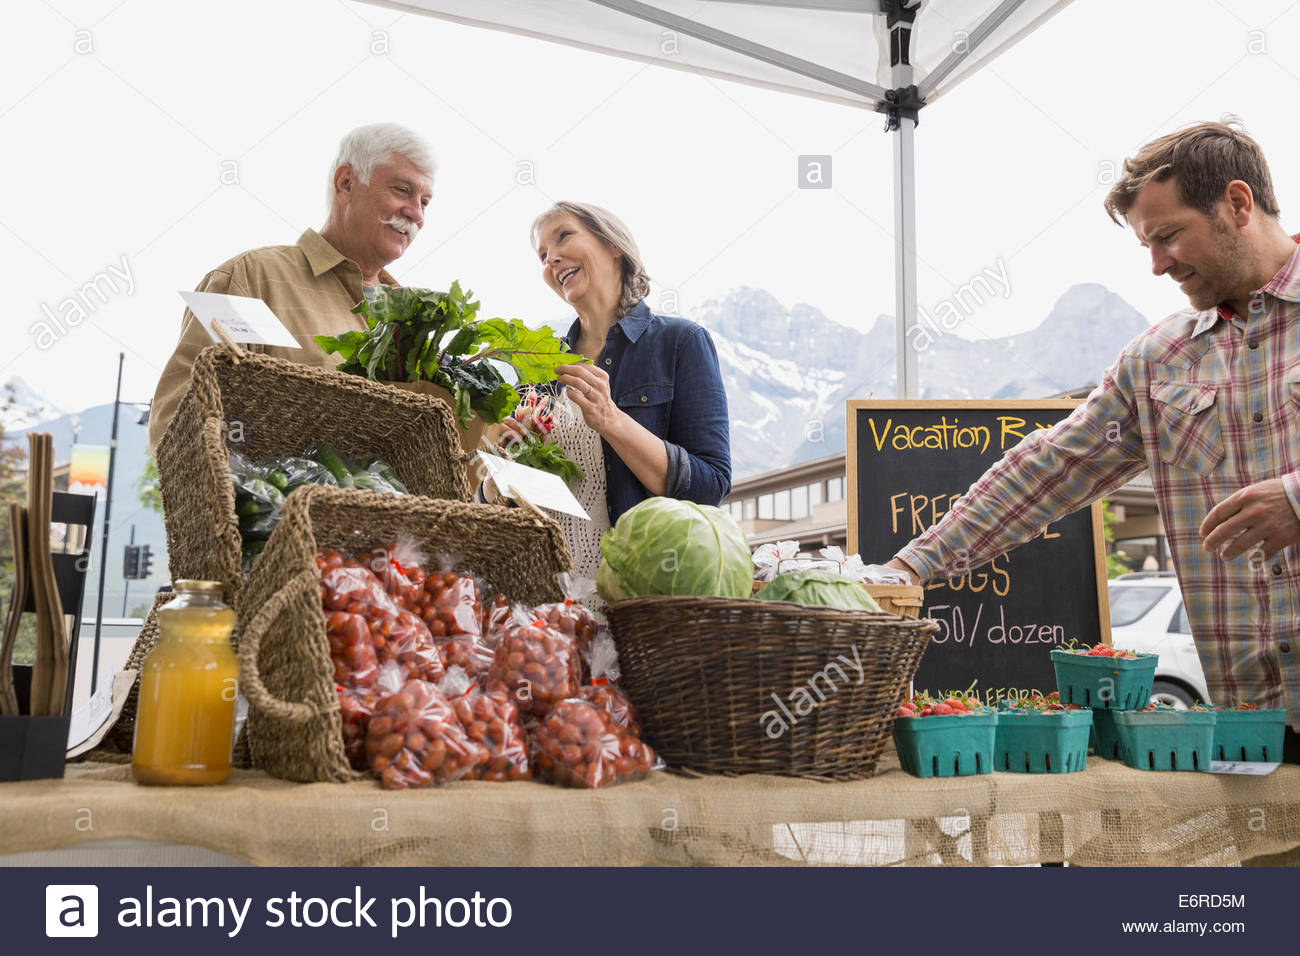 People shopping at farmers market - Stock Image